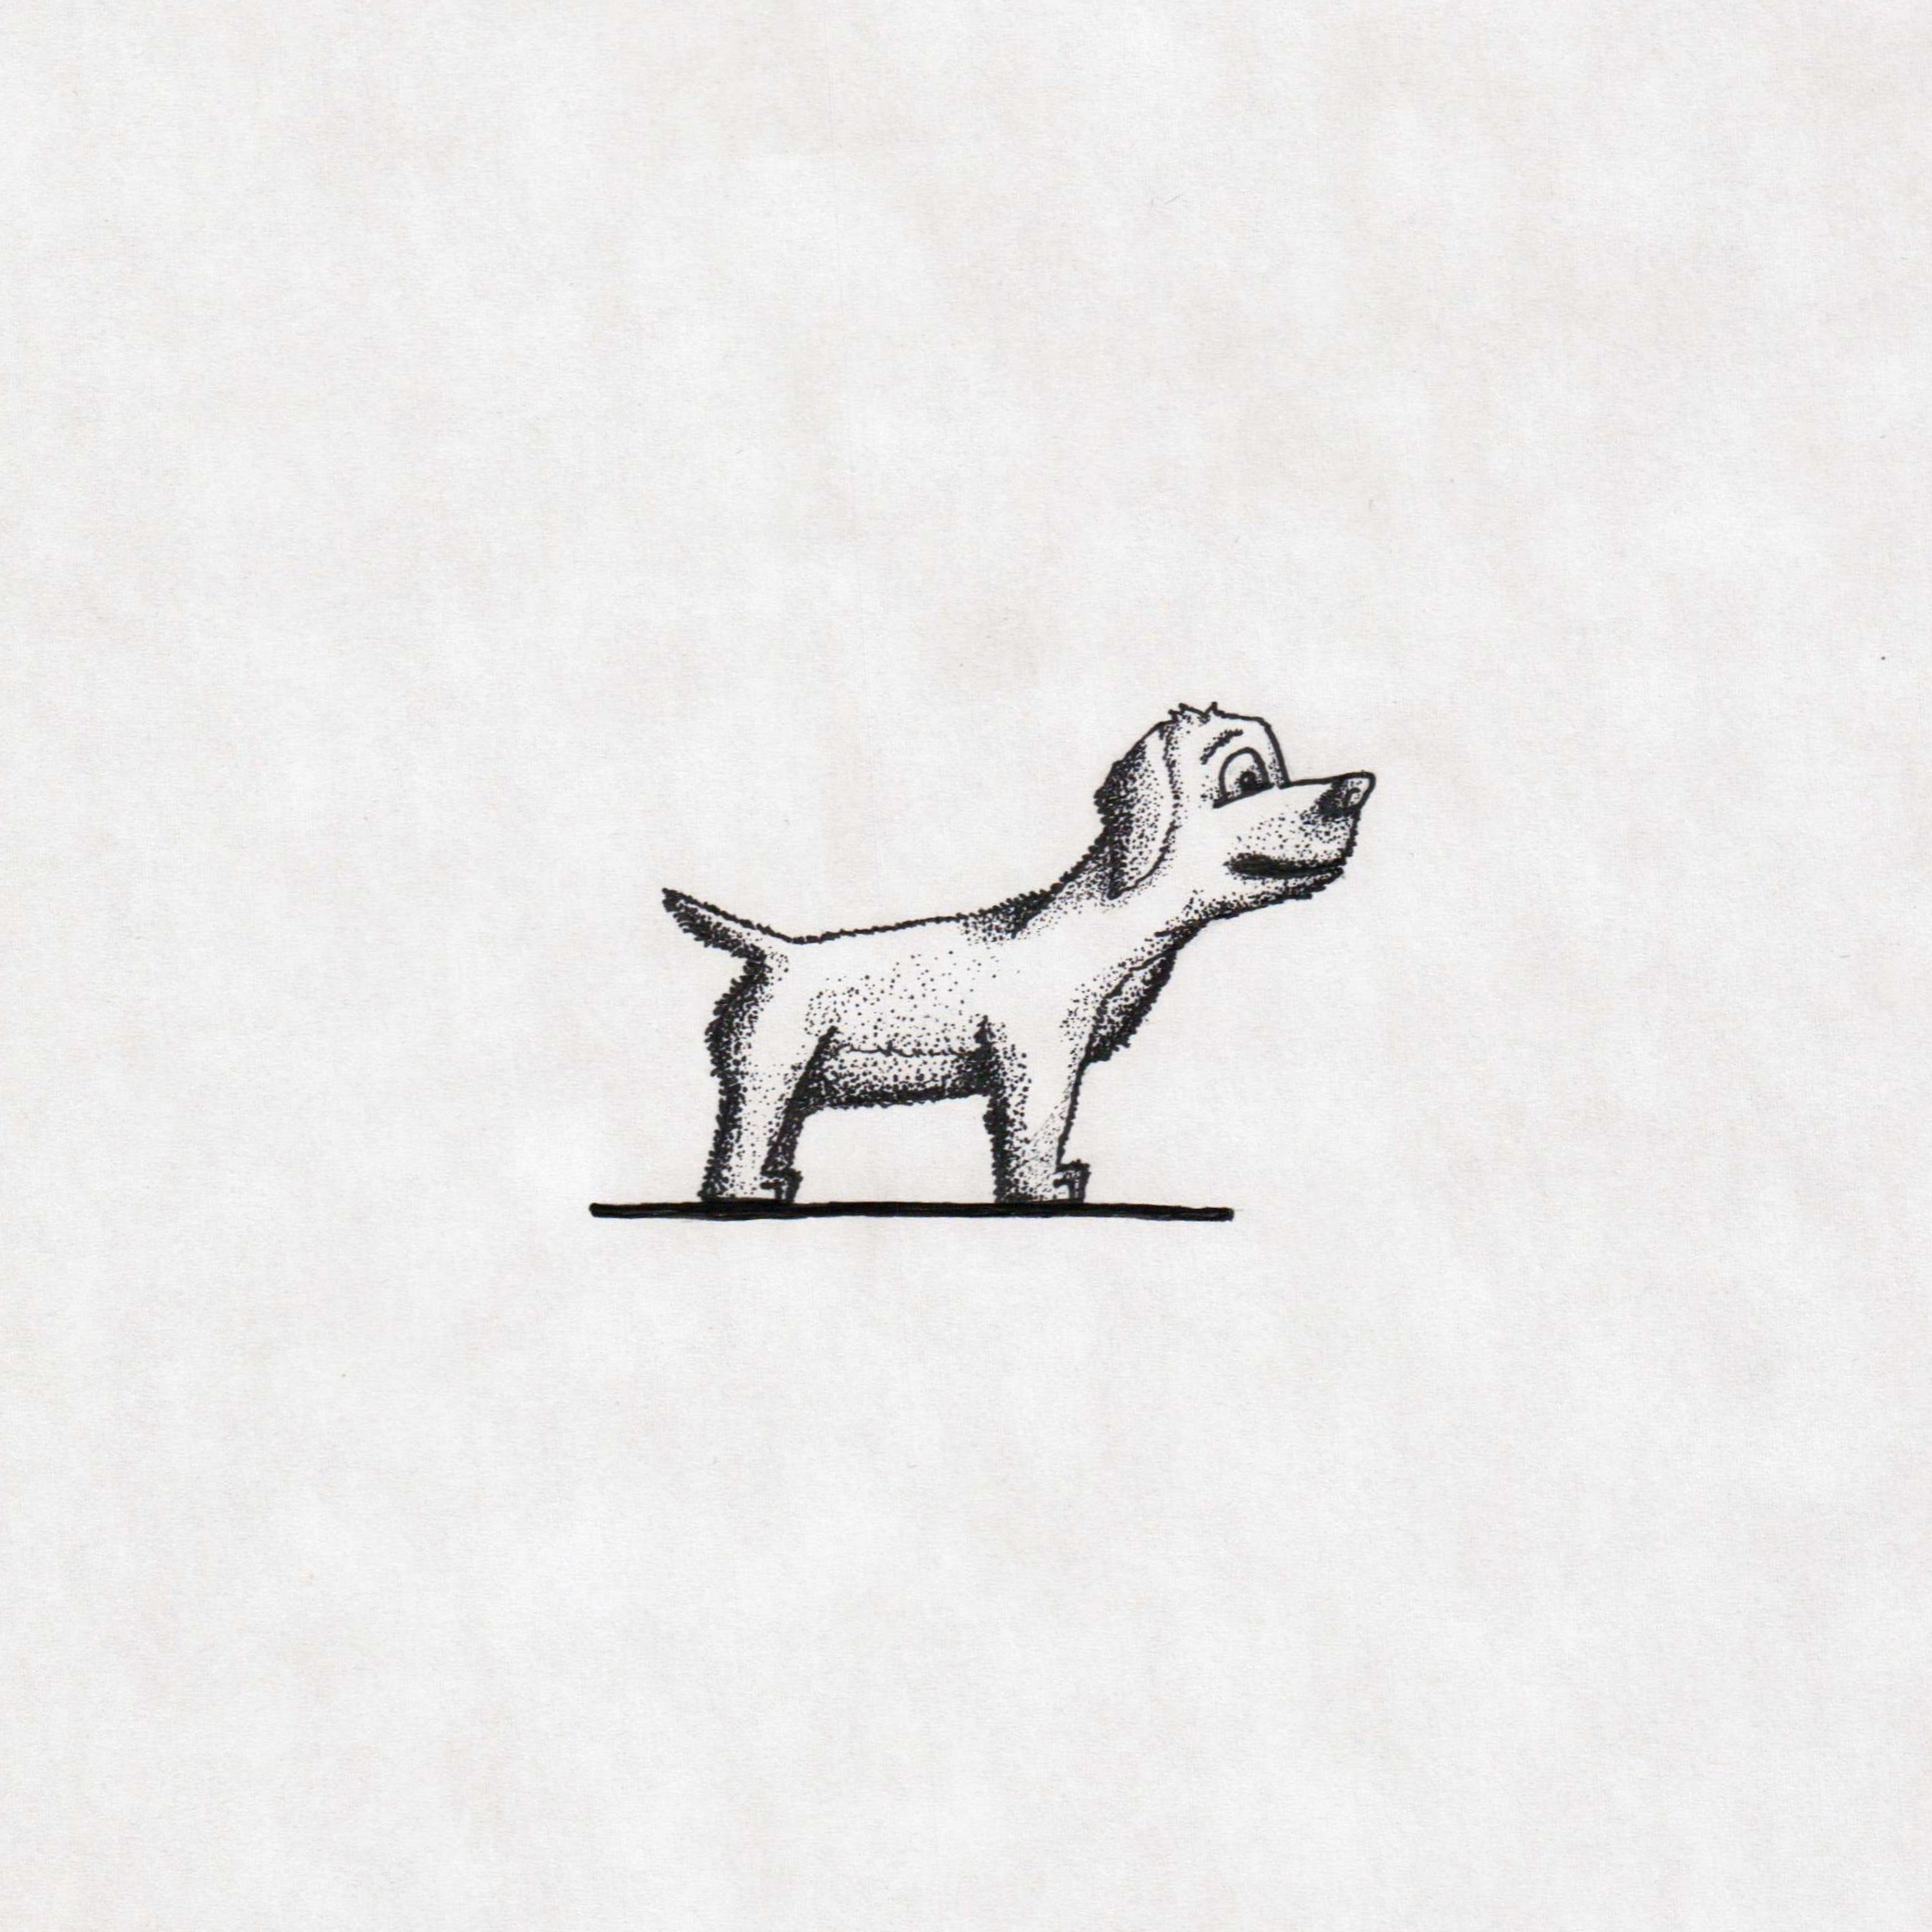 Puppy_Ink_Drawing.JPG